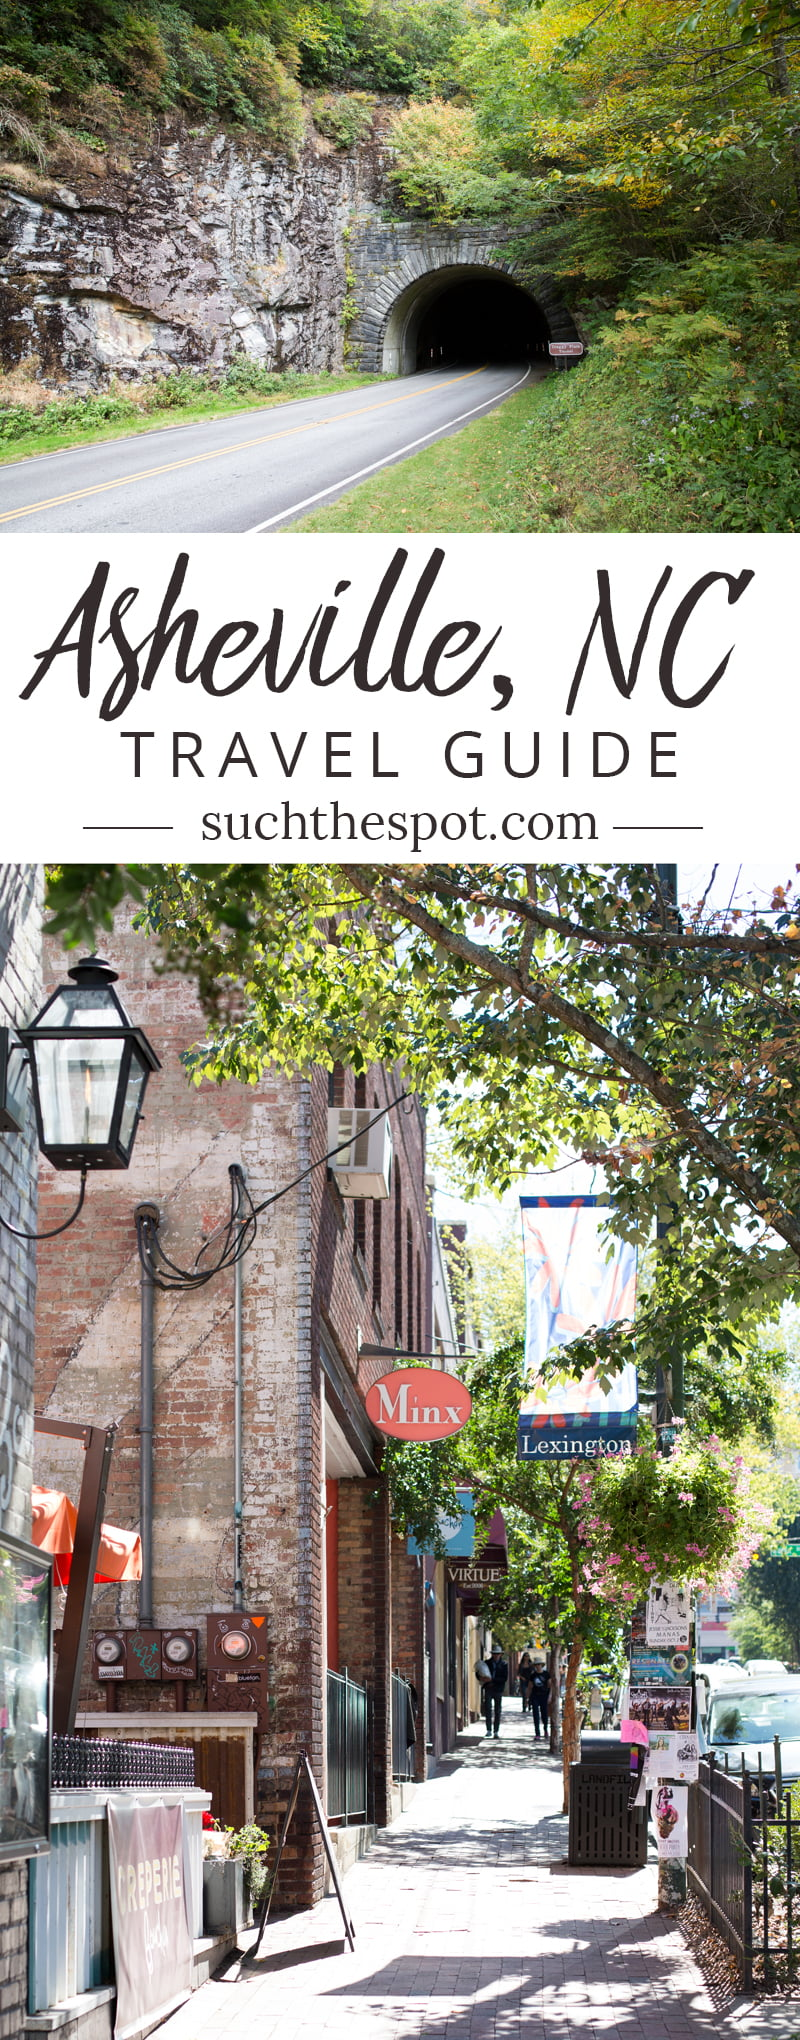 As a family of foodies, Asheville, NC, made the perfect weekend getaway for us. With so many things to do, from hiking to shopping, we had a great trip.